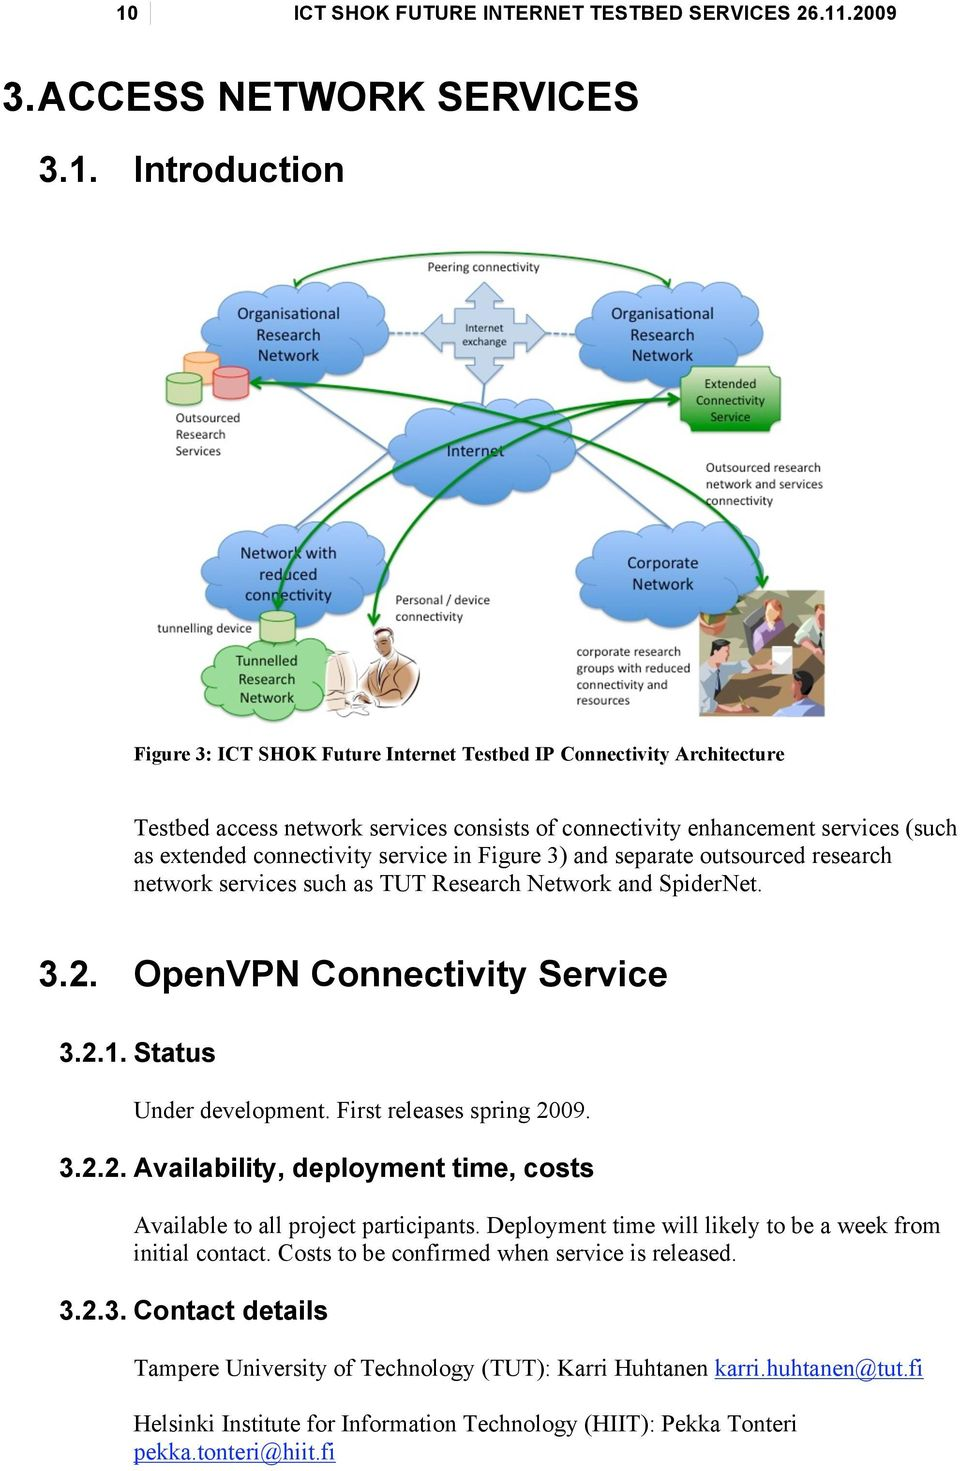 3.2. OpenVPN Connectivity Service 3.2.1. Status Under development. First releases spring 2009. 3.2.2. Availability, deployment time, costs Available to all project participants.